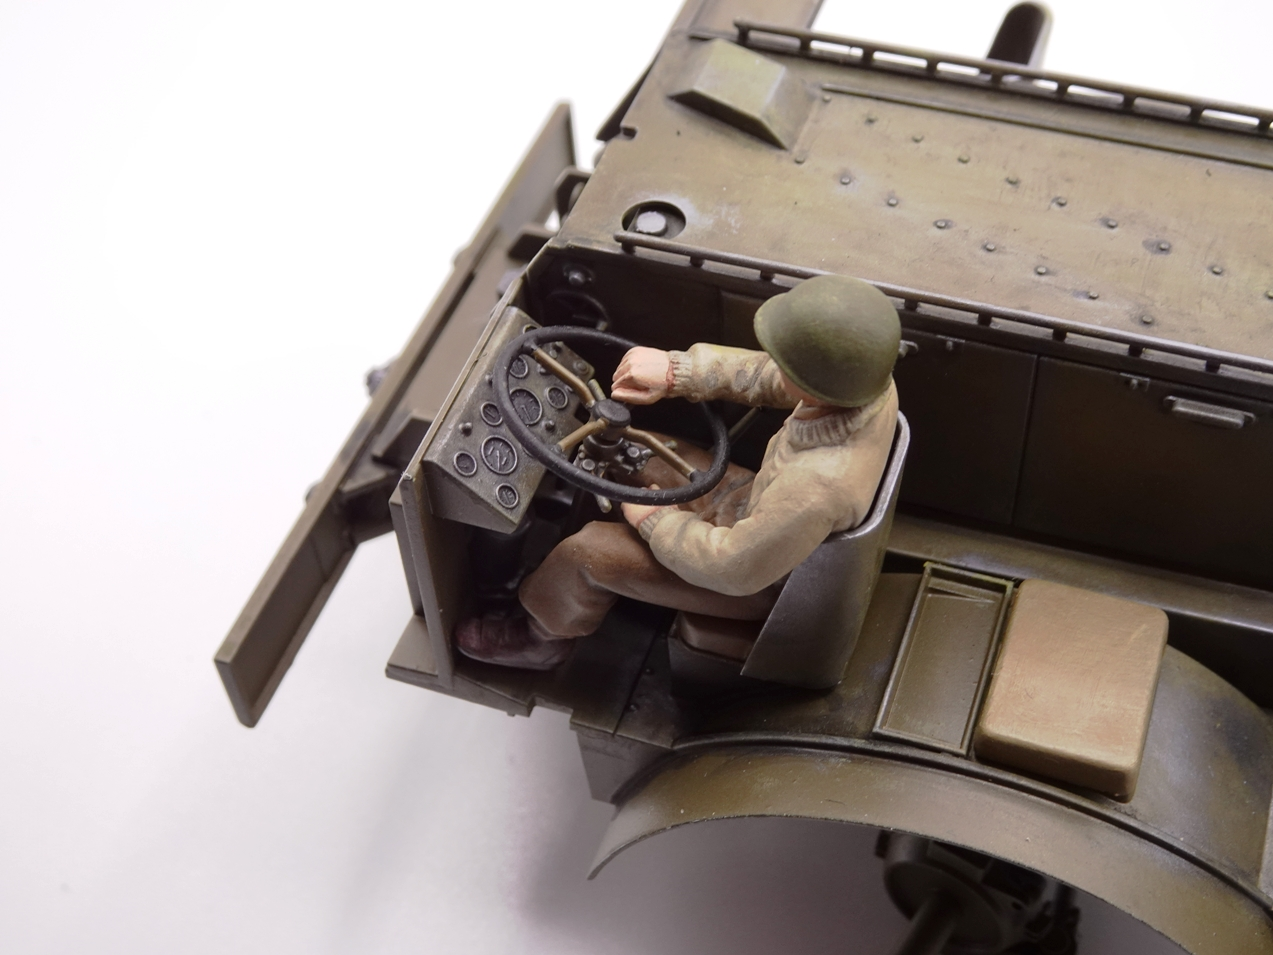 [Tamiya 1/35] M26 Armored tank recovery vehicle réf. 35244 - Page 2 M26-1110-4